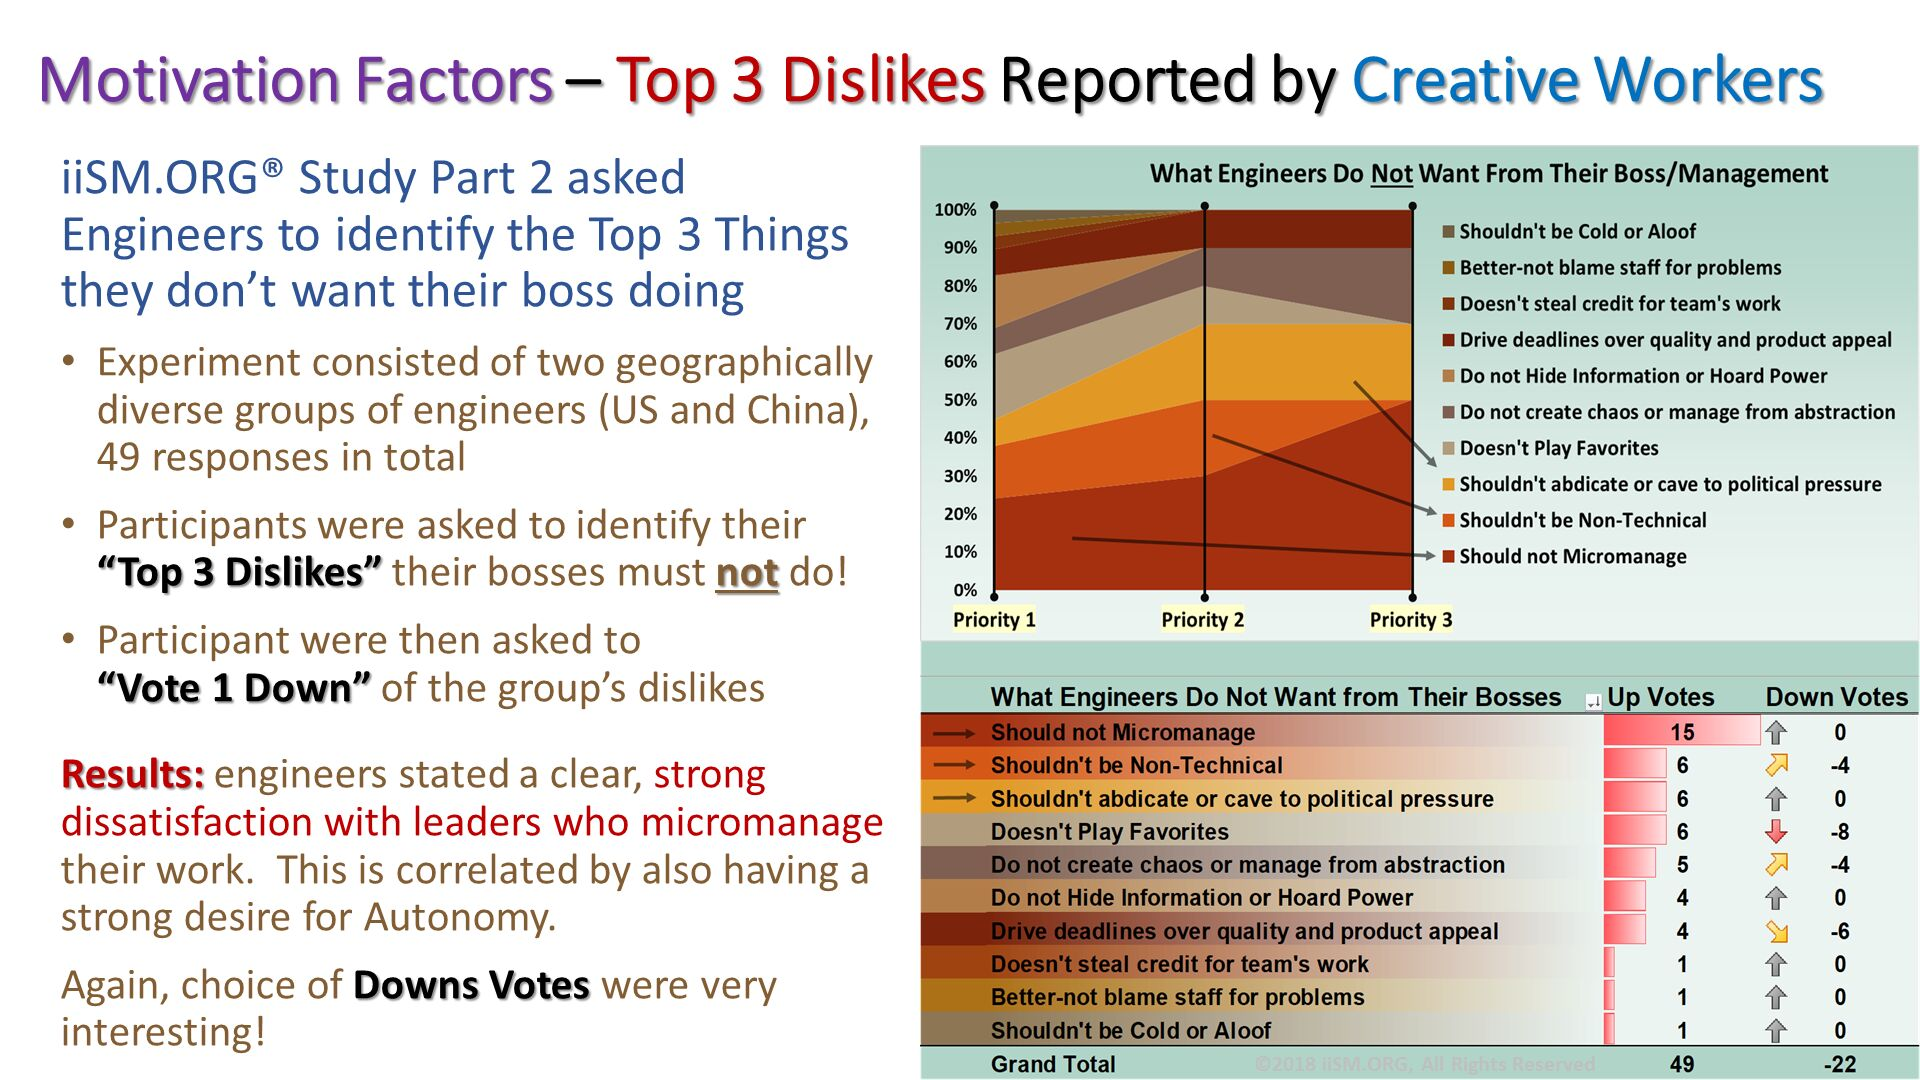 "iiSM.ORG® Study Part 2 asked Engineers to identify the Top 3 Things they don't want their boss doing   Experiment consisted of two geographically diverse groups of engineers (US and China),49 responses in total Participants were asked to identify their ""Top 3 Dislikes"" their bosses must not do! Participant were then asked to ""Vote 1 Down"" of the group's dislikes Results: engineers stated a clear, strong dissatisfaction with leaders who micromanage their work.  This is correlated by also having a strong desire for Autonomy. Again, choice of Downs Votes were very interesting!. Motivation Factors – Top 3 Dislikes Reported by Creative Workers. ©2018 iiSM.ORG, All Rights Reserved."